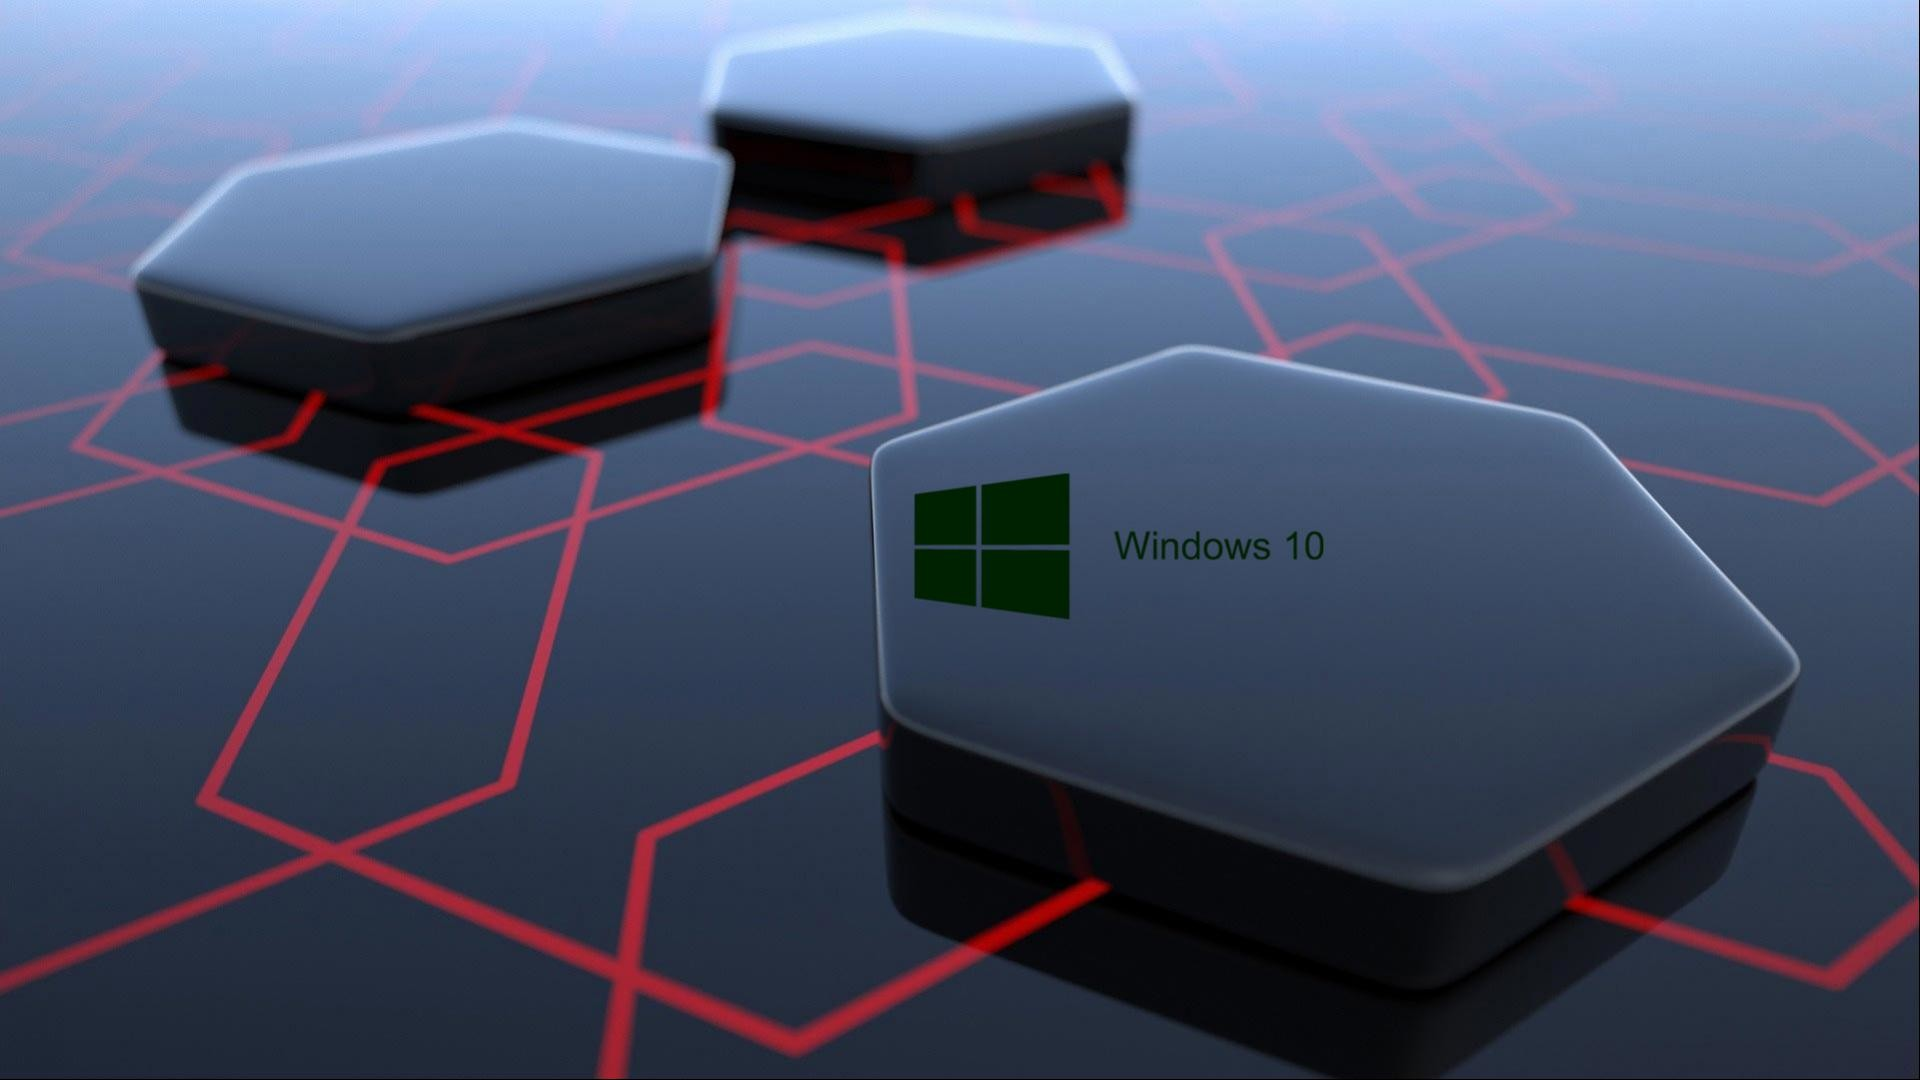 1920x1080 Windows 10 Desktop Image with 3d Art Black Hexagonal Wallpapers | HD .